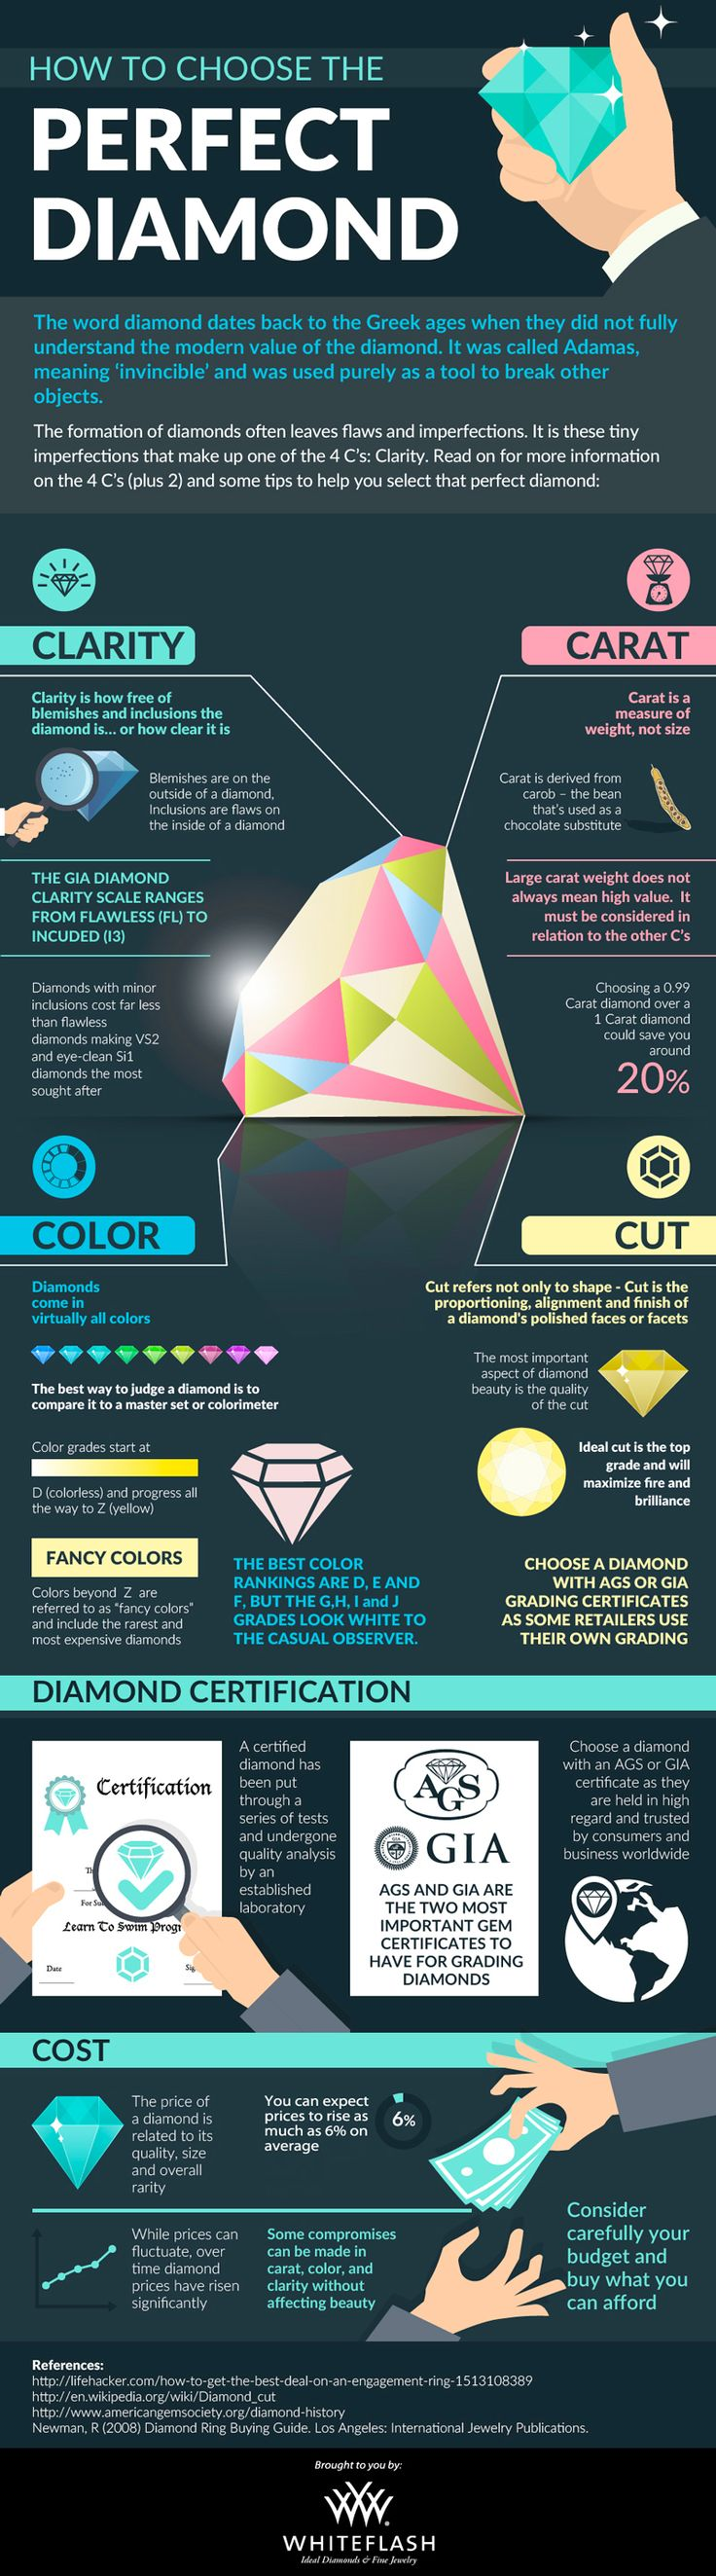 magnetband and color co chart charts clarity dolap diamond diamondcolorchart grading